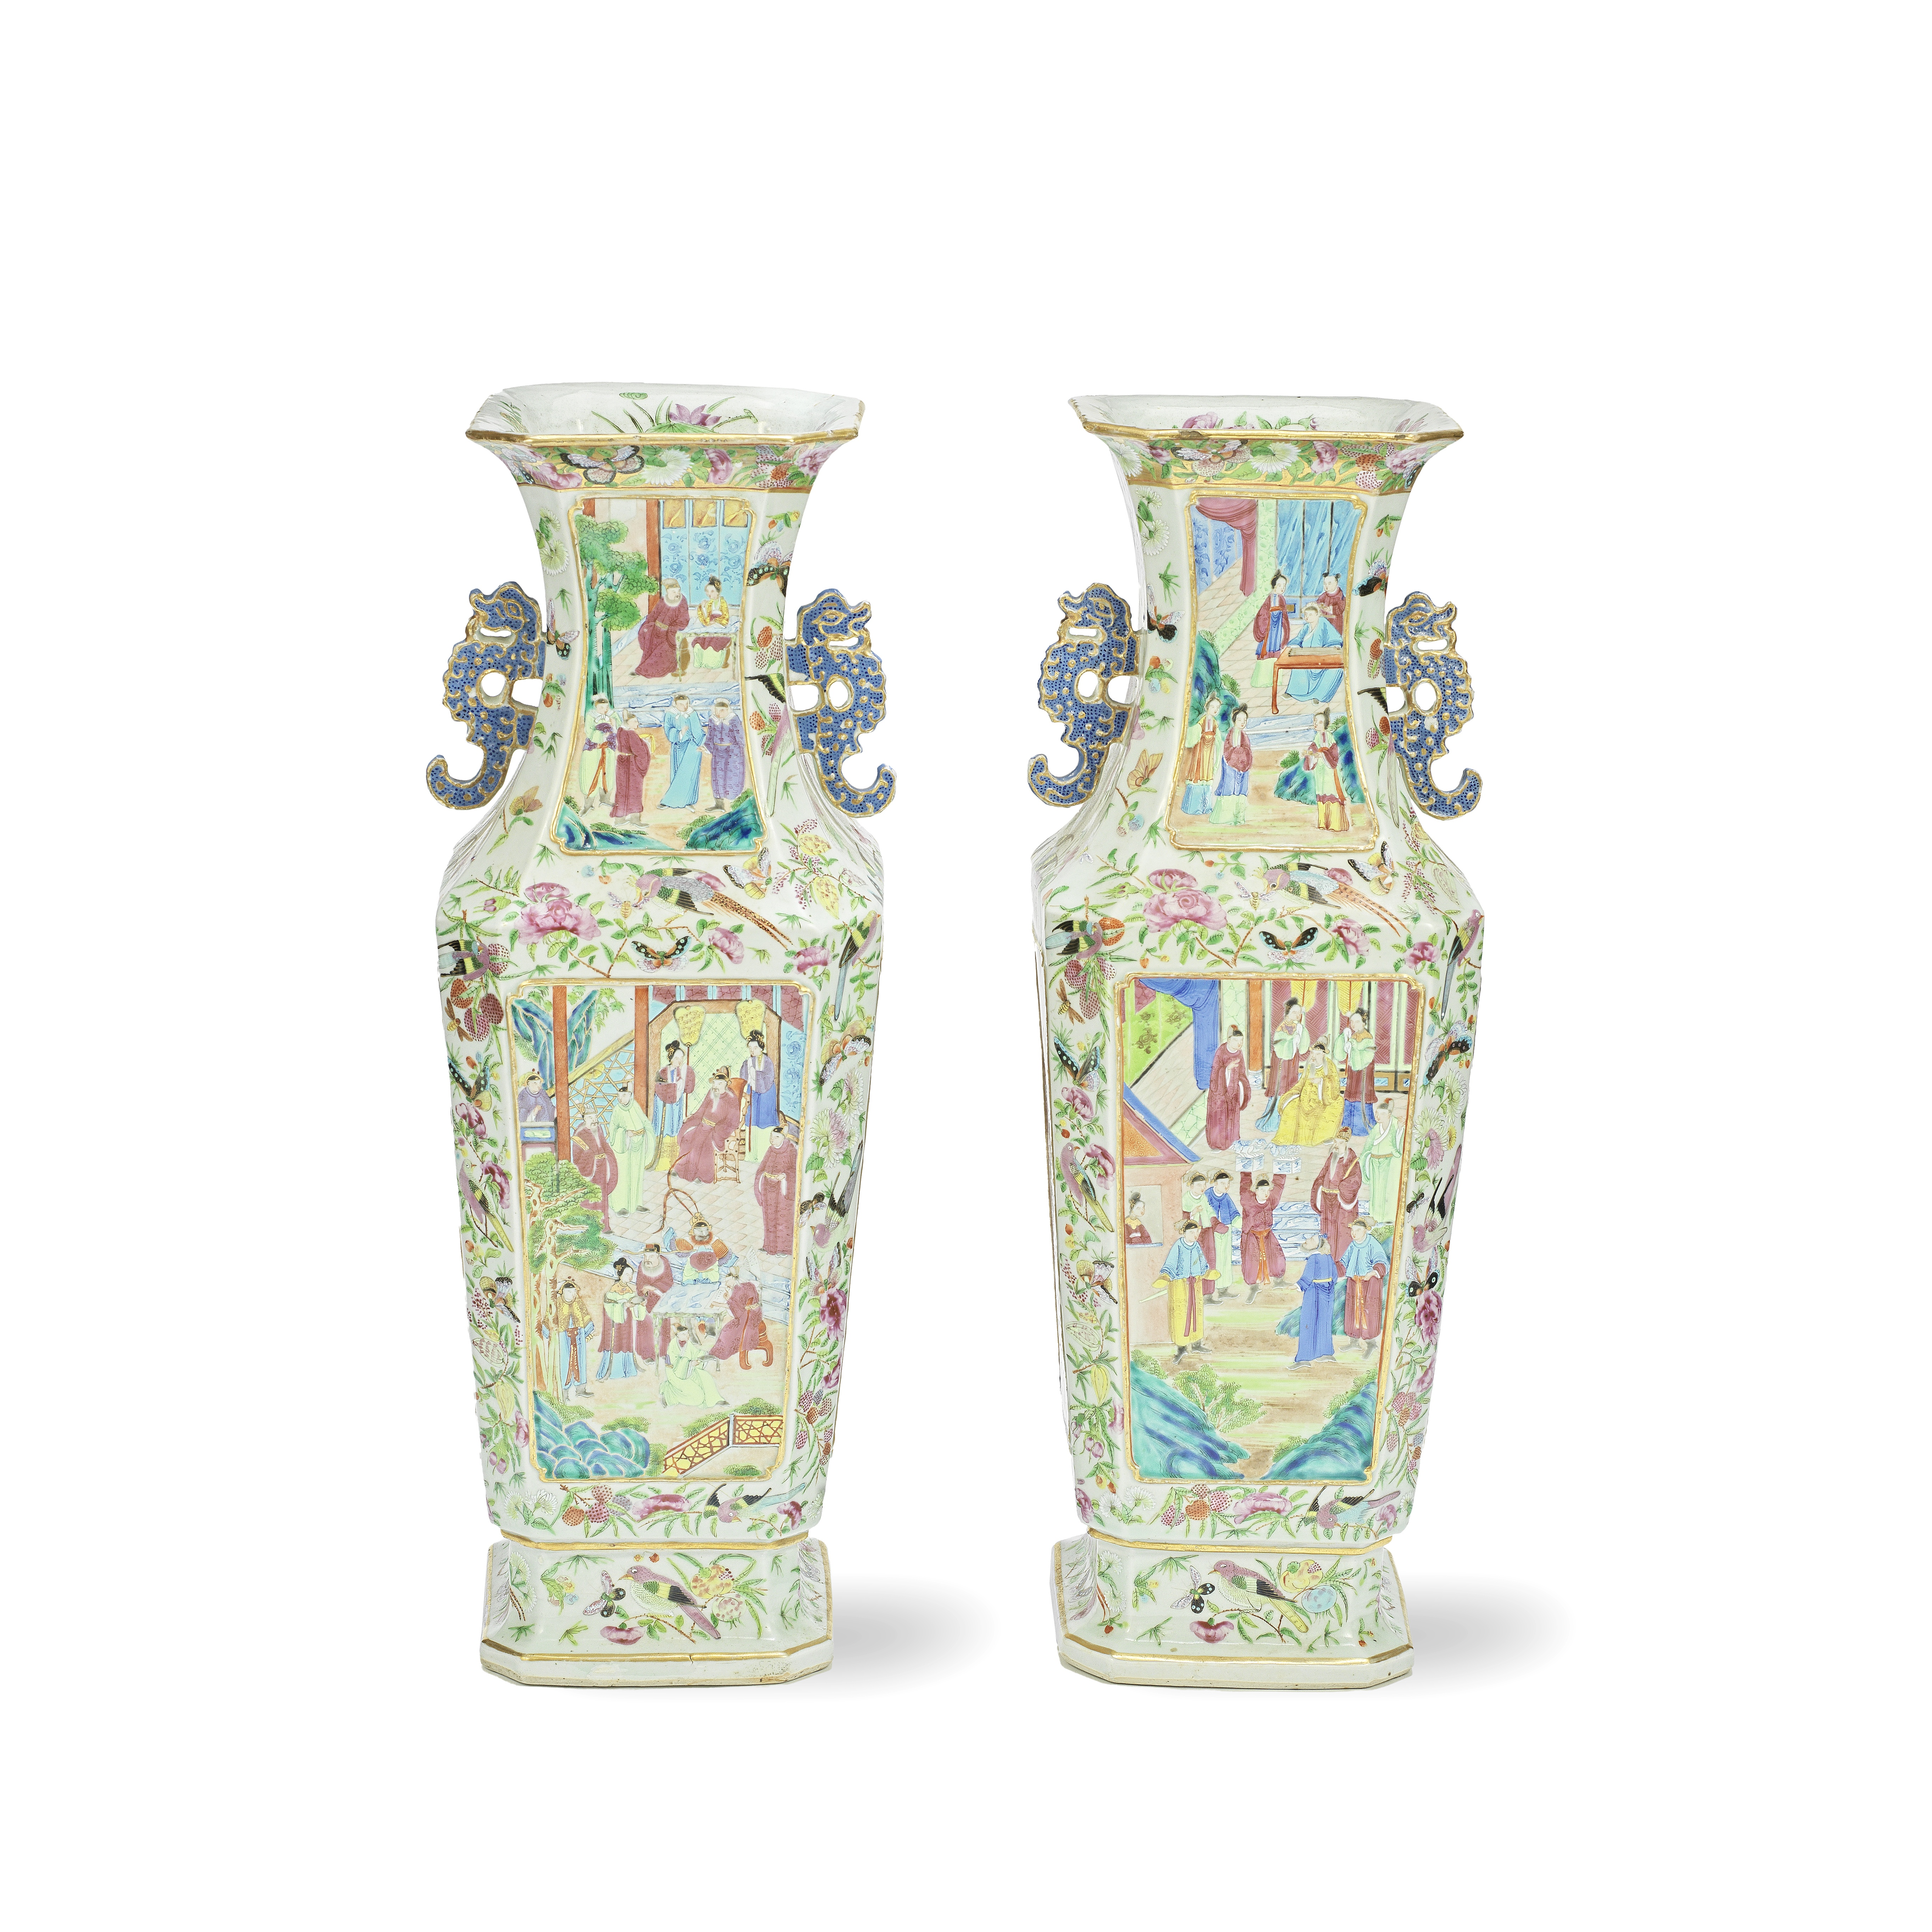 A PAIR OF CANTON FAMILLE ROSE SQUARE BALUSTER VASES 19th century (2)